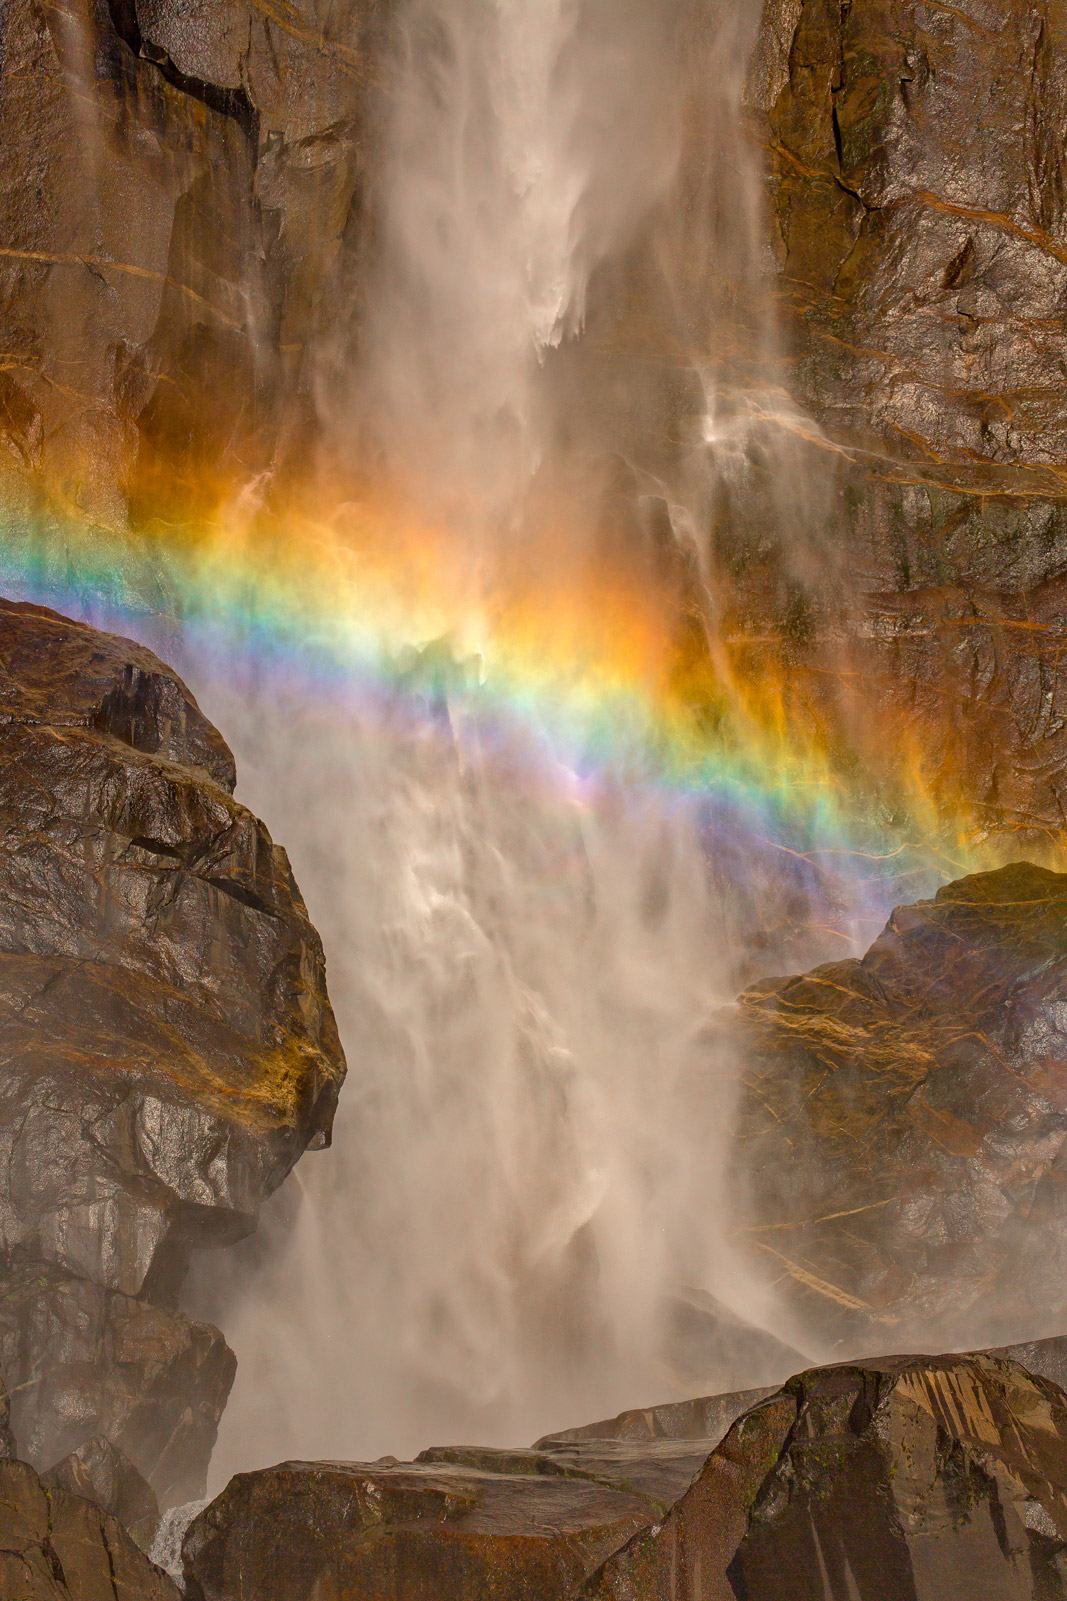 A Limited Edition photograph of a rainbow formed in the spray at the base of Bridalveil Falls at Yosemite National Park in California...